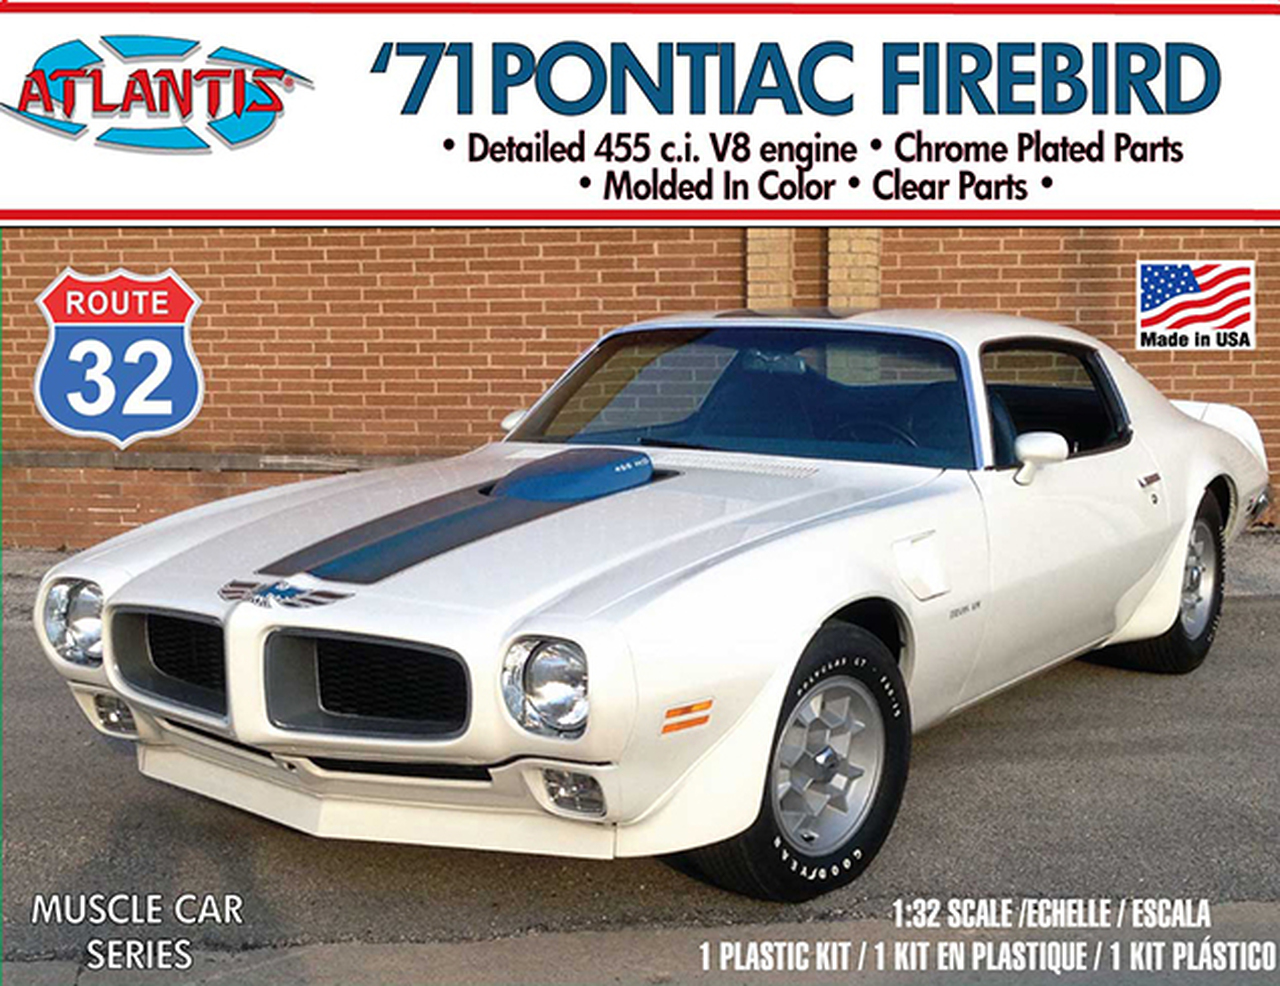 Atlantis 1/32 1971 Pontiac Firebird Route 32